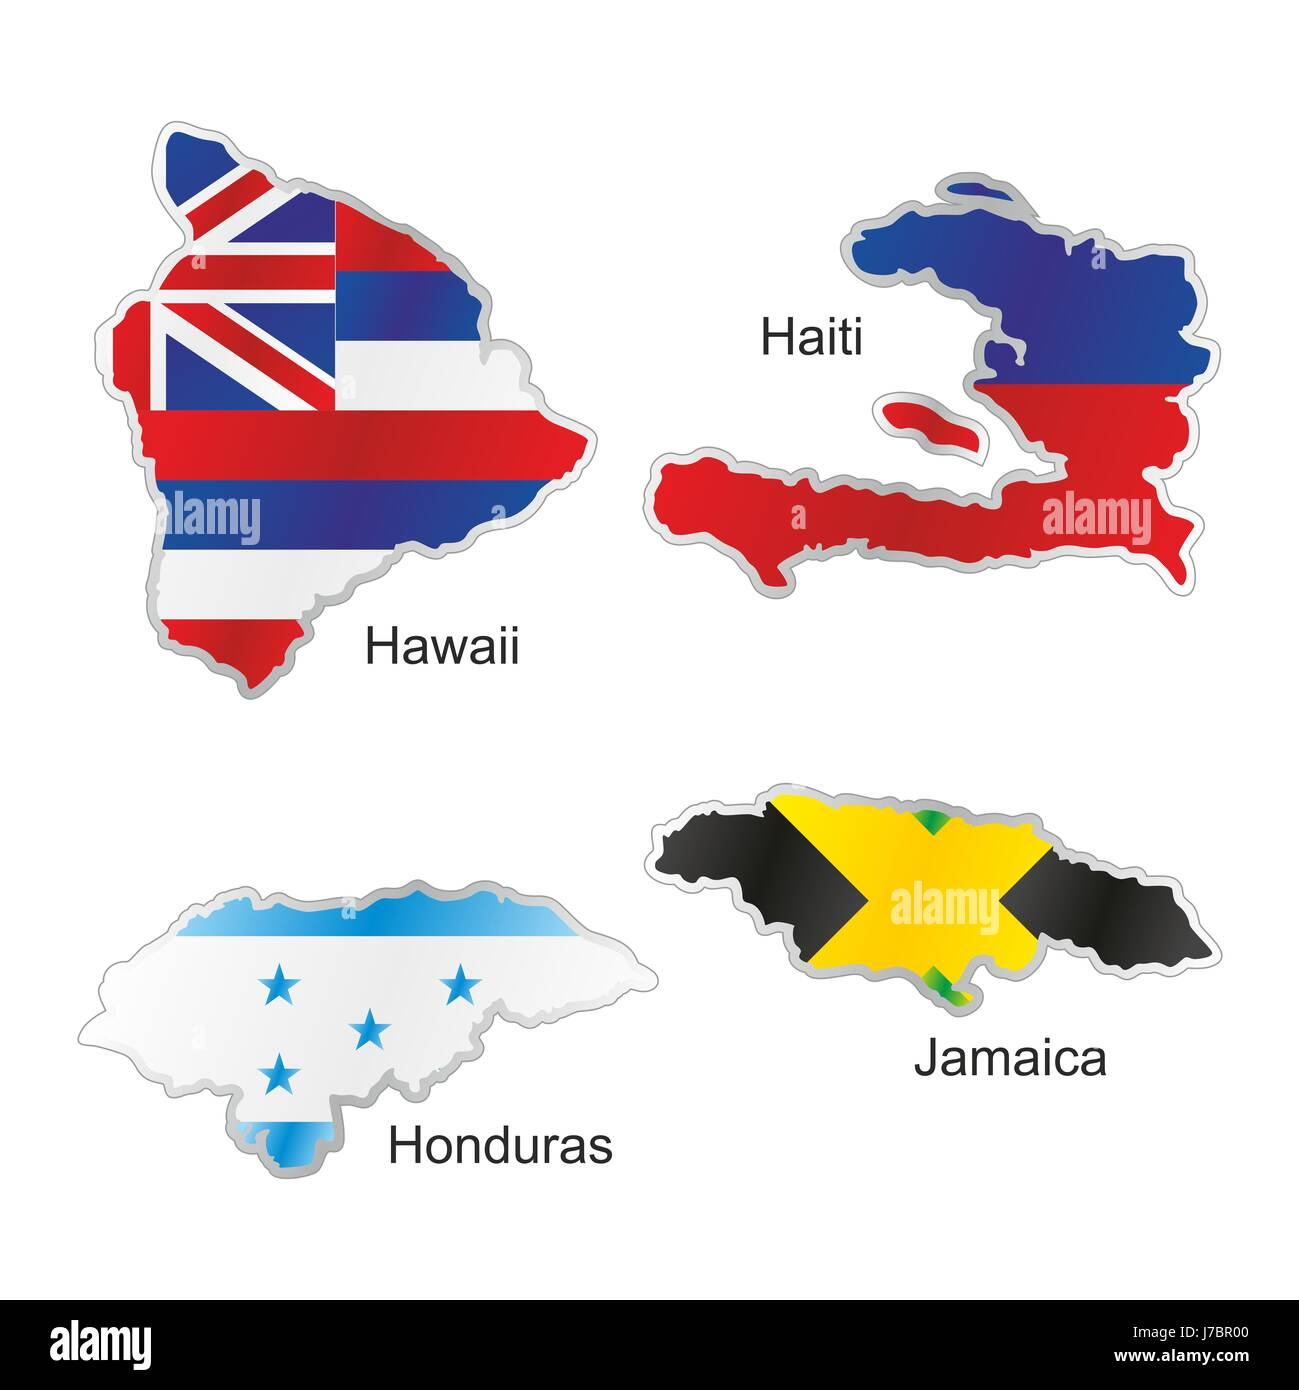 America flag honduras icon jamaica haiti map atlas map of the america flag honduras icon jamaica haiti map atlas map of the world hawaii gumiabroncs Choice Image